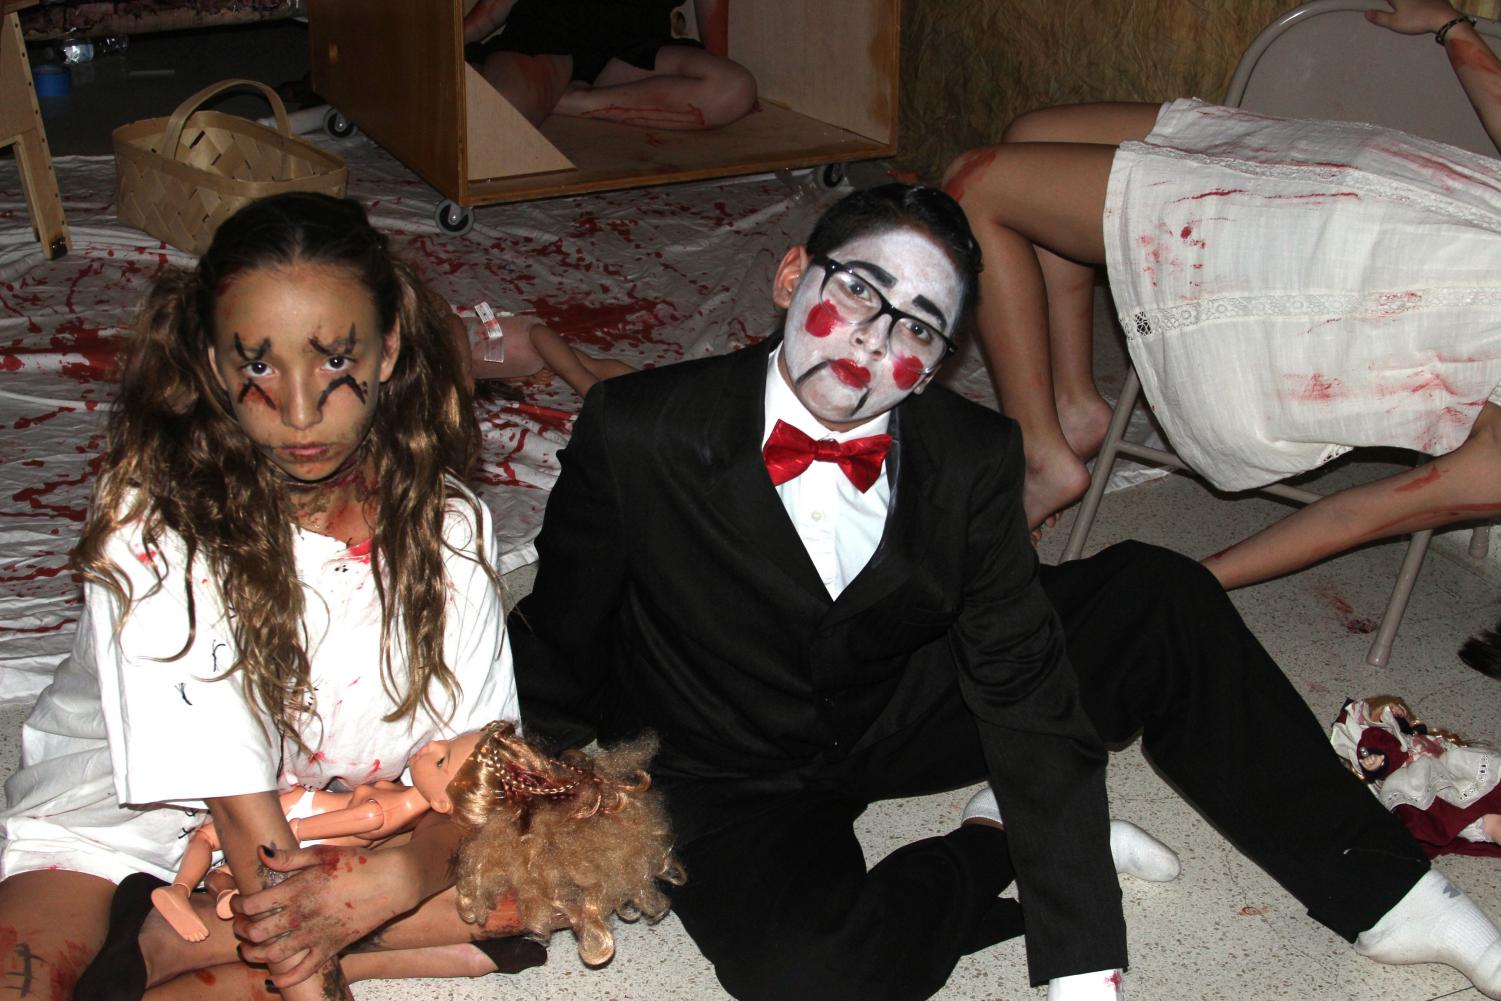 Haunted Hallway is one of the main attractions at Trunk or Treat every year. Each year, more and more people come to experience the frightening new hallway cheer comes up with.